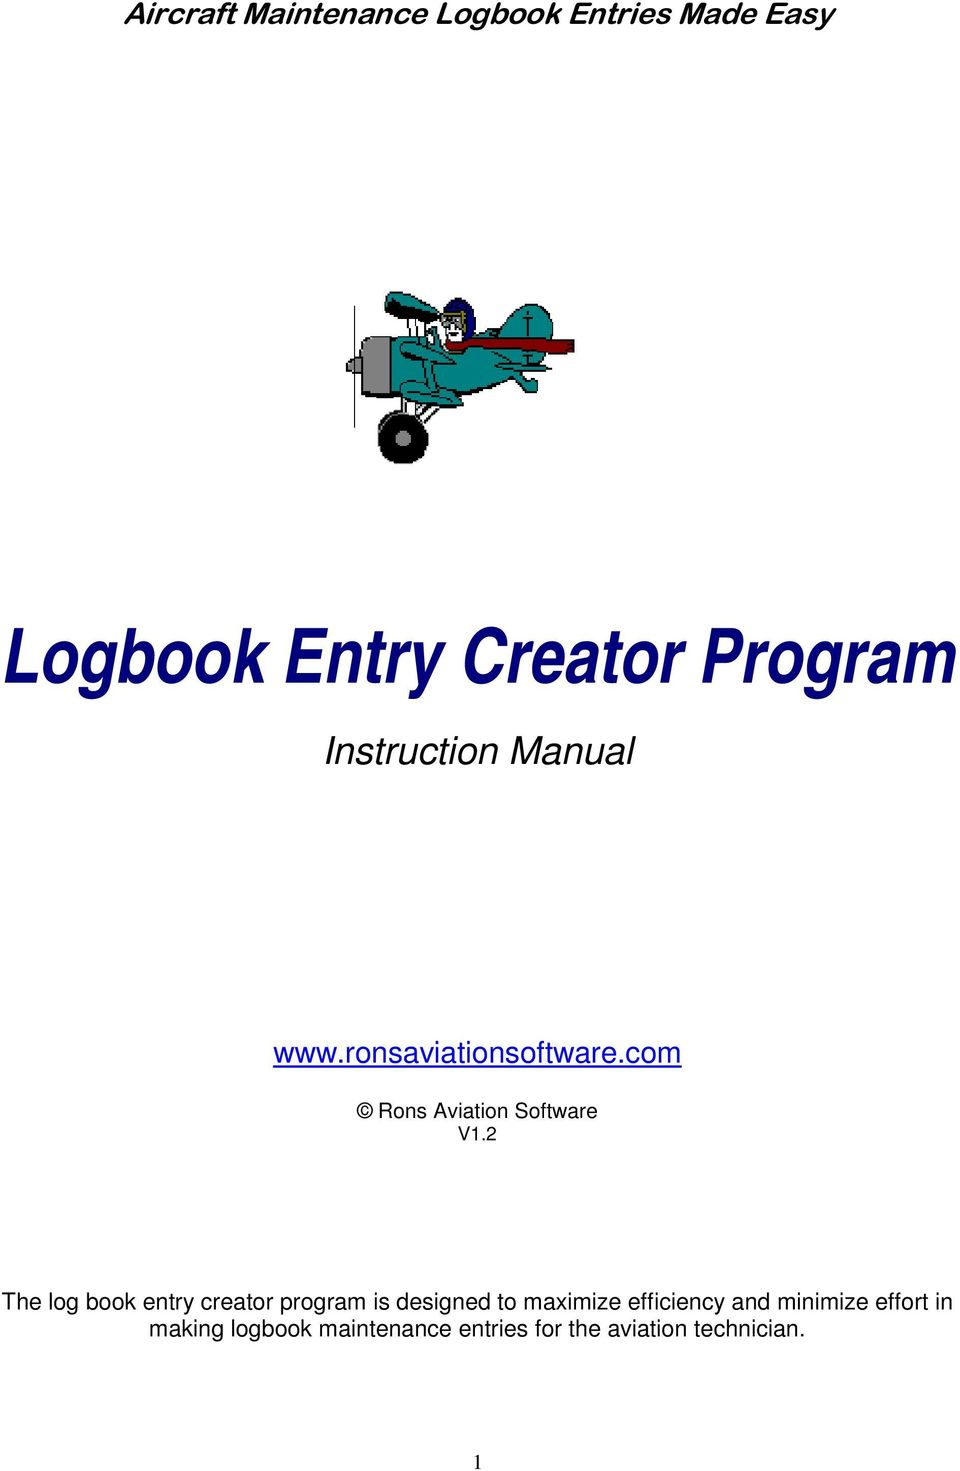 2 The log book entry creator program is designed to maximize efficiency and